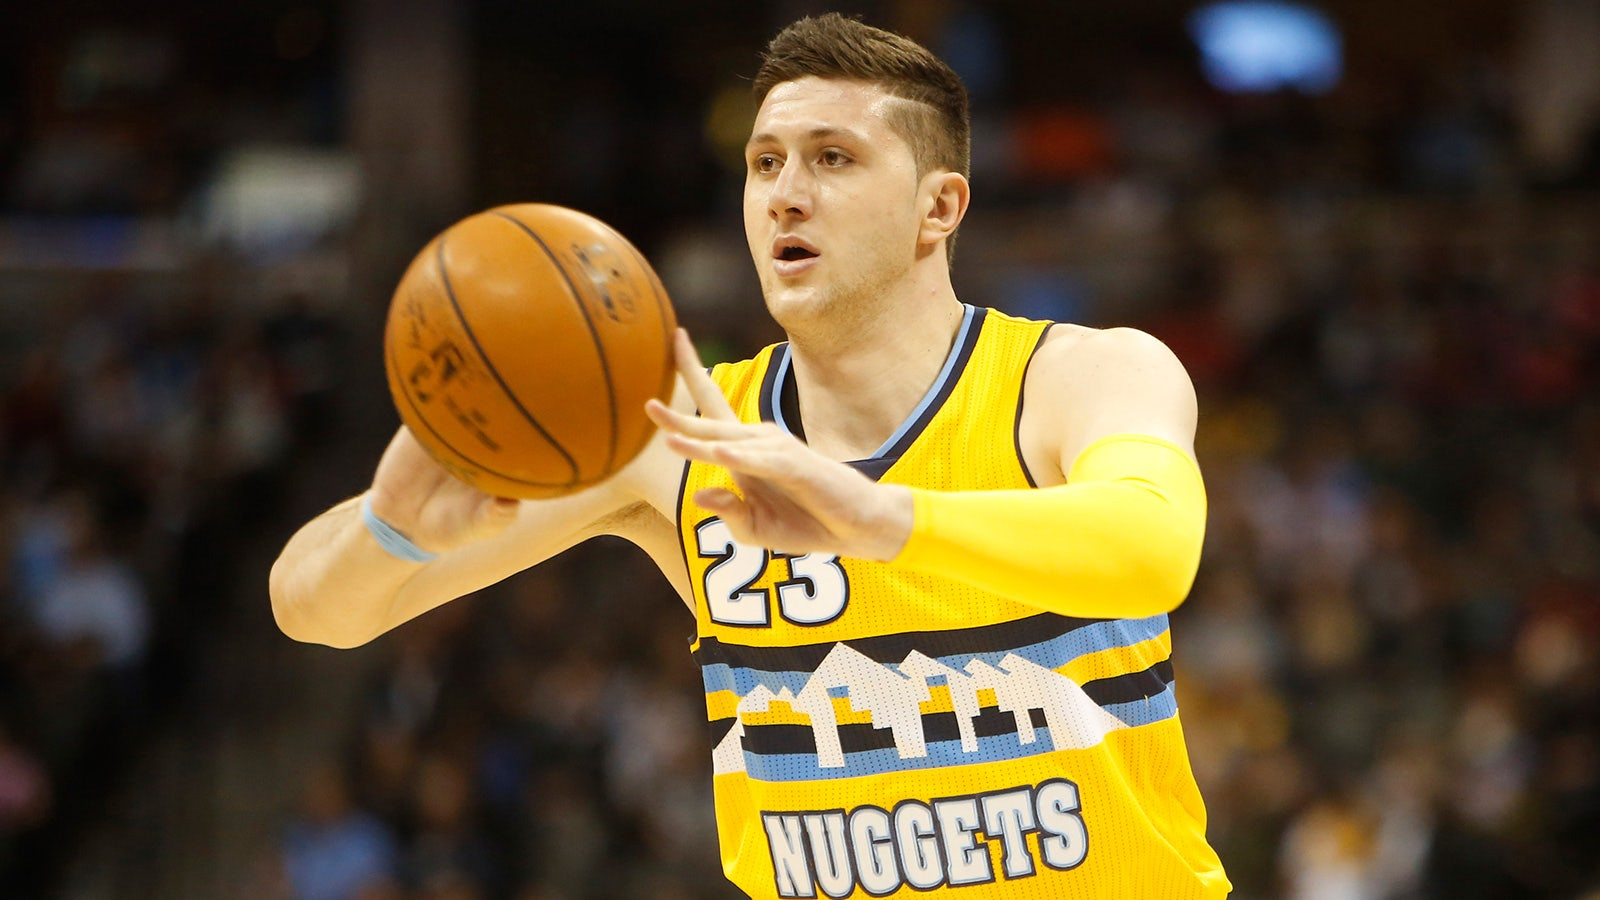 Simmons did call out Portland center Jusuf Nurkic after missing a free throw in an apparently response to Nurkic making a comment A player can be heard